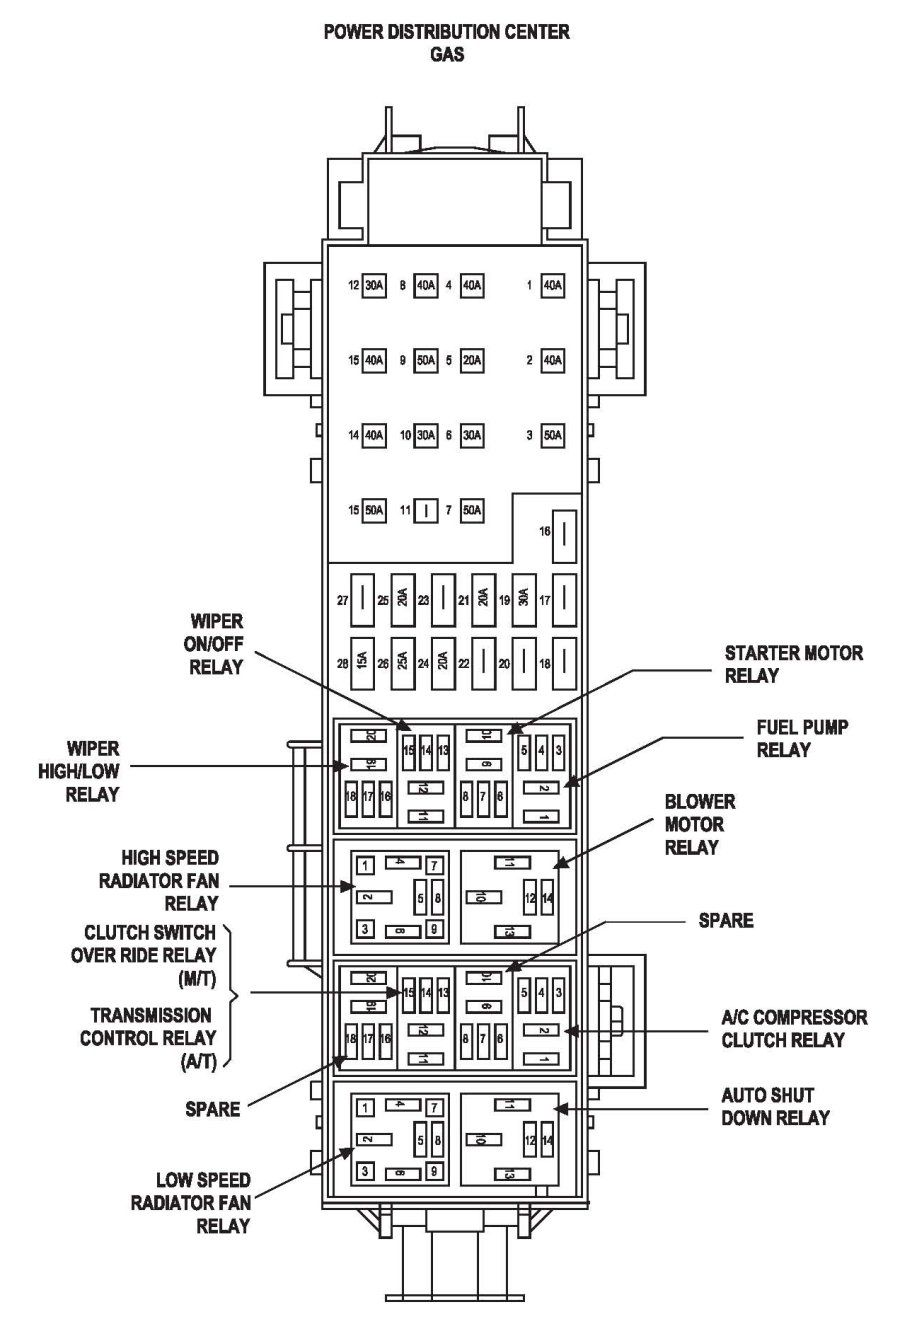 b3536c3739783eb19f827744cc42c3c4 jeep liberty fuse box diagram image details jeep liberty 2012 jeep wrangler unlimited fuse box at virtualis.co